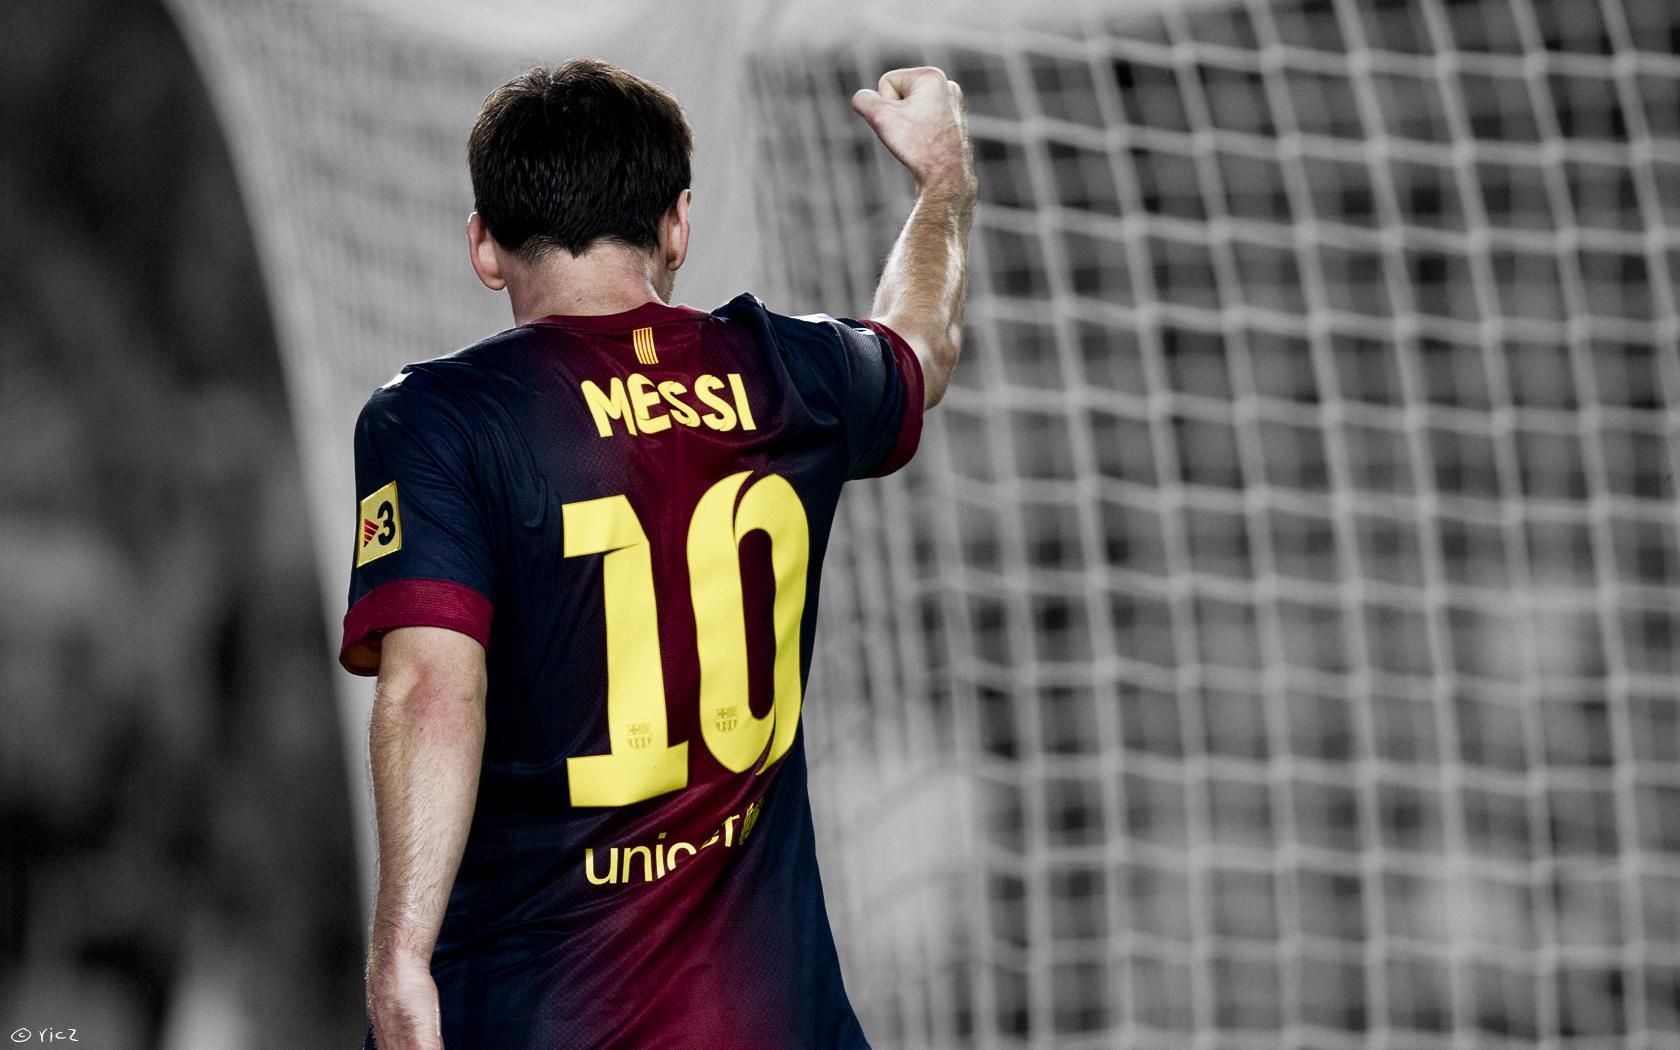 Lionel Messi Hd Wallpapers 1080p Wallpaper Cave